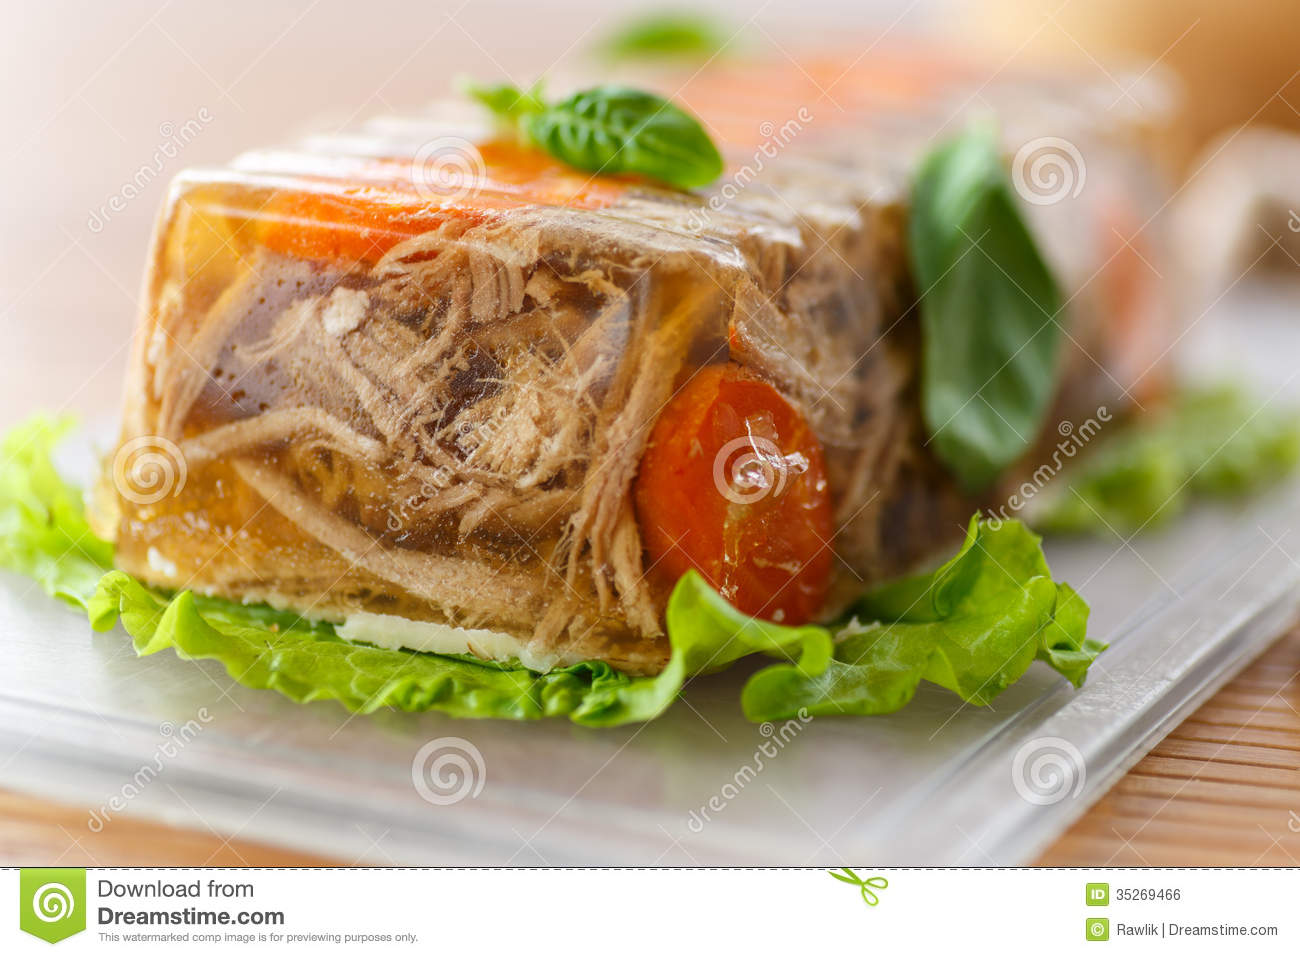 Meat Aspic Royalty Free Stock Image - Image: 35269466